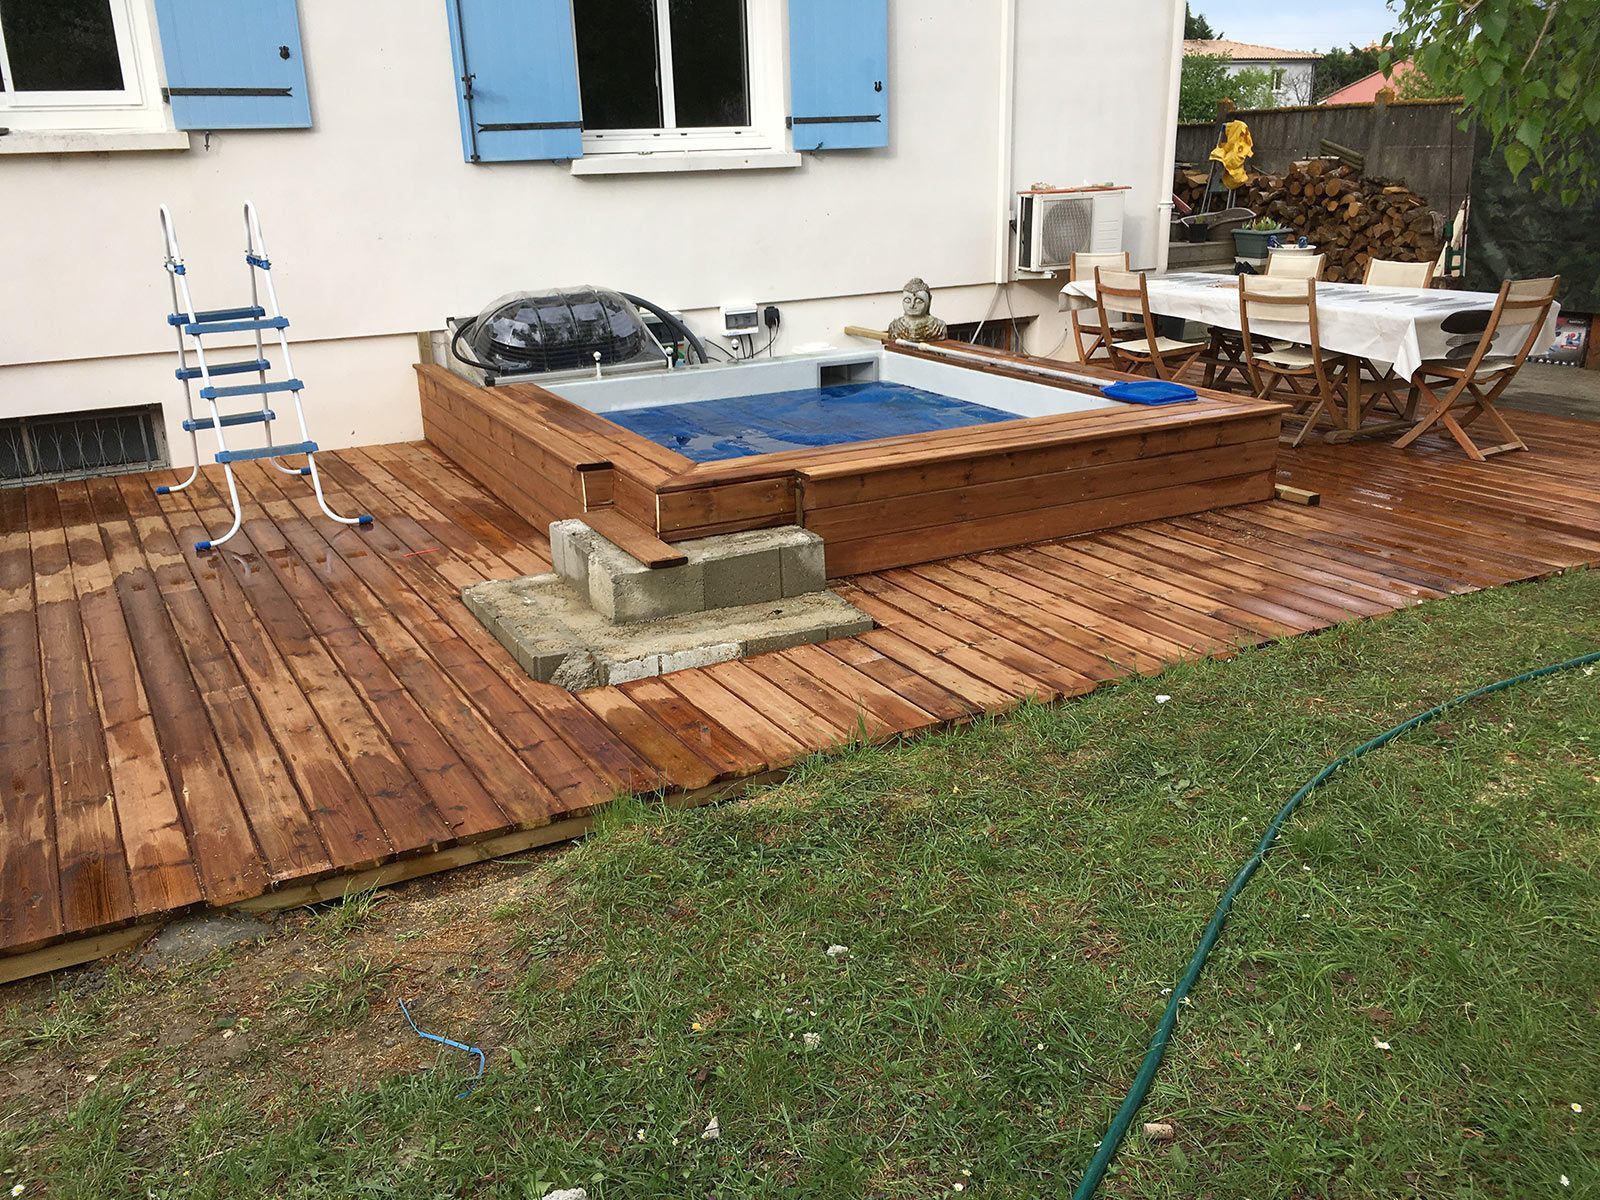 Fin de l 39 habillage du spa b ton construction d 39 une for Ab construction piscine